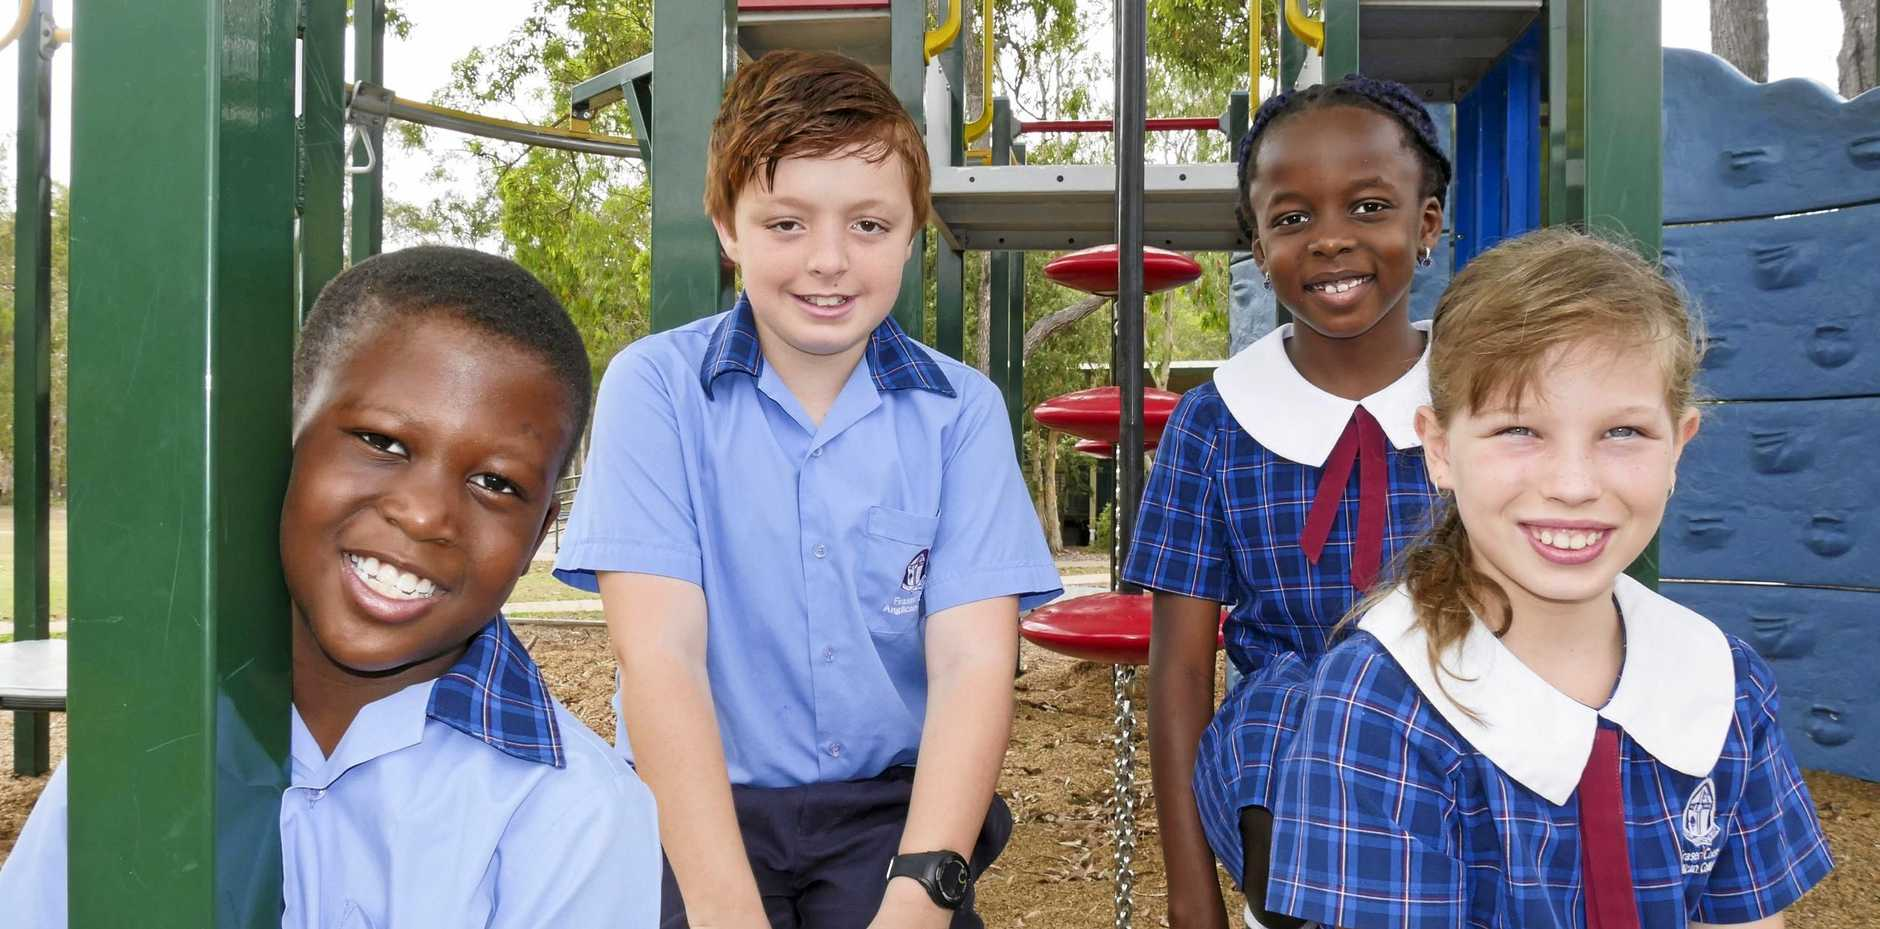 Fraser Coast Anglican College year 3 student Oluwatobi Adewumi, year 7 student Caidyn Hunt, year 3 student Diva Ejembi and year 4 student Courtney Adams.